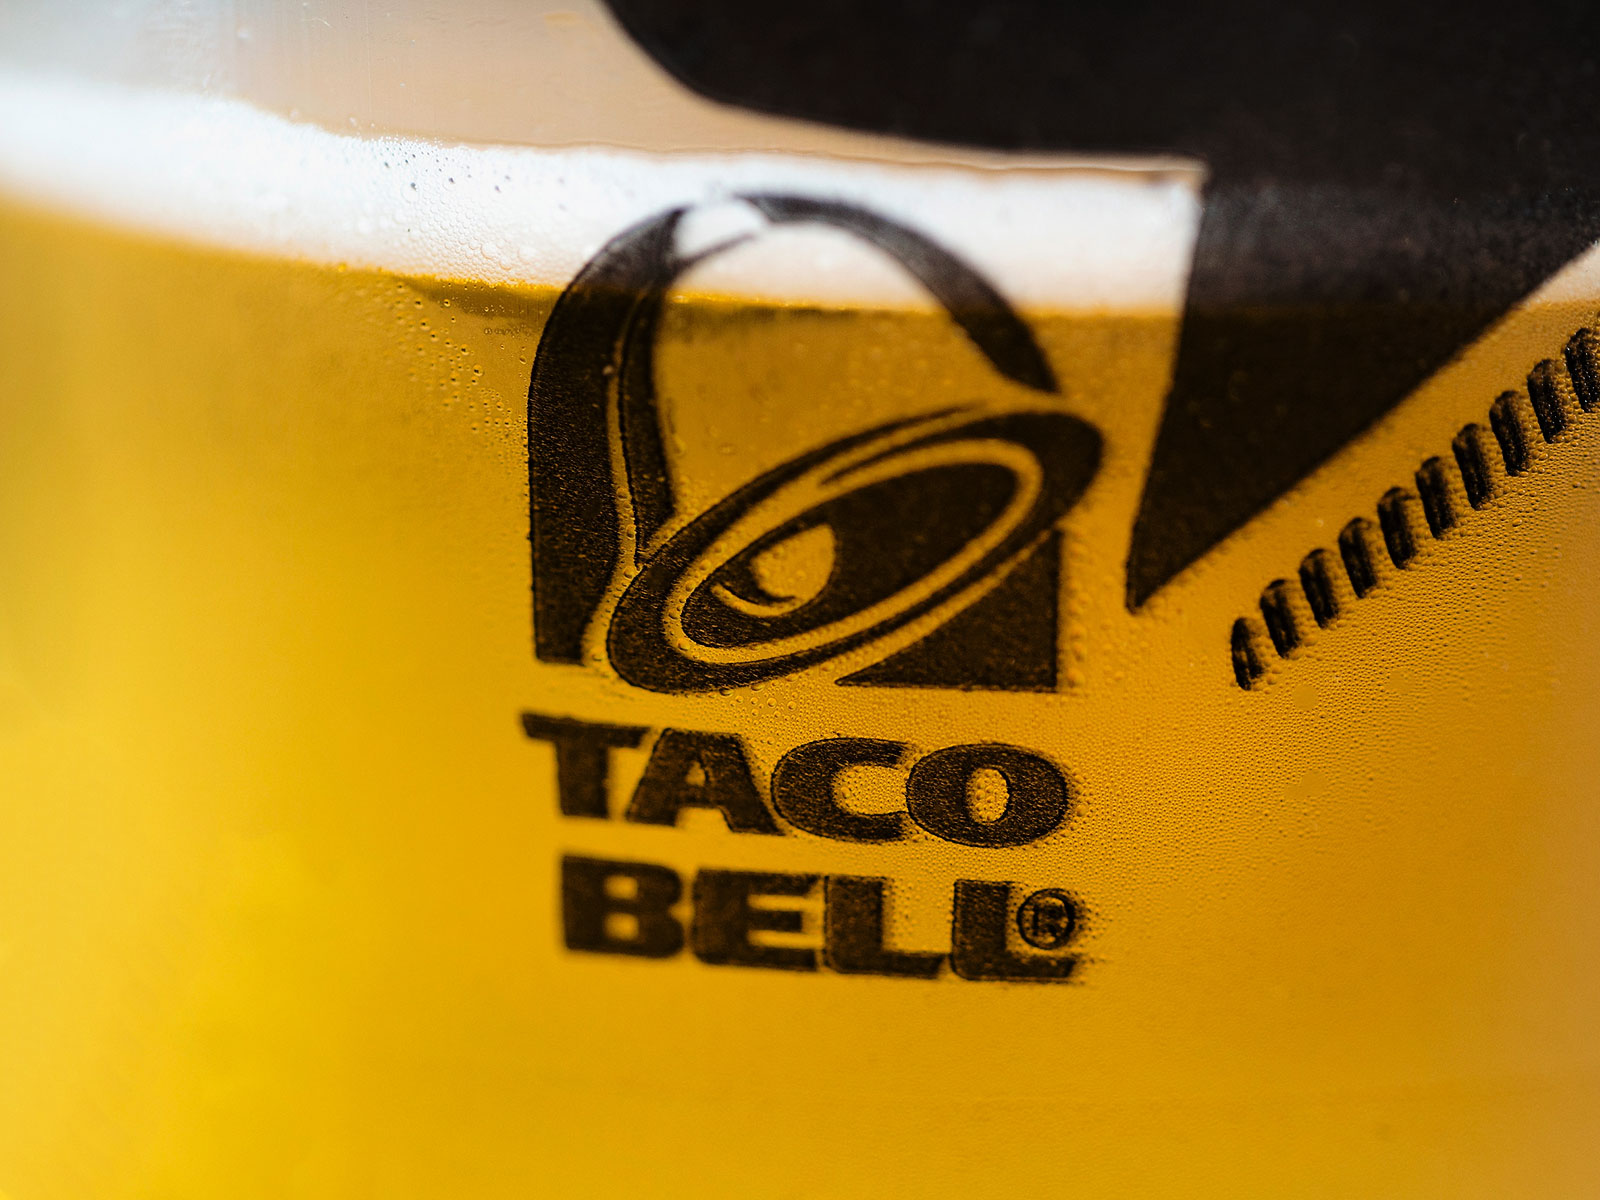 Taco Bell's expansion plan includes 350 new restaurants that would serve alcohol